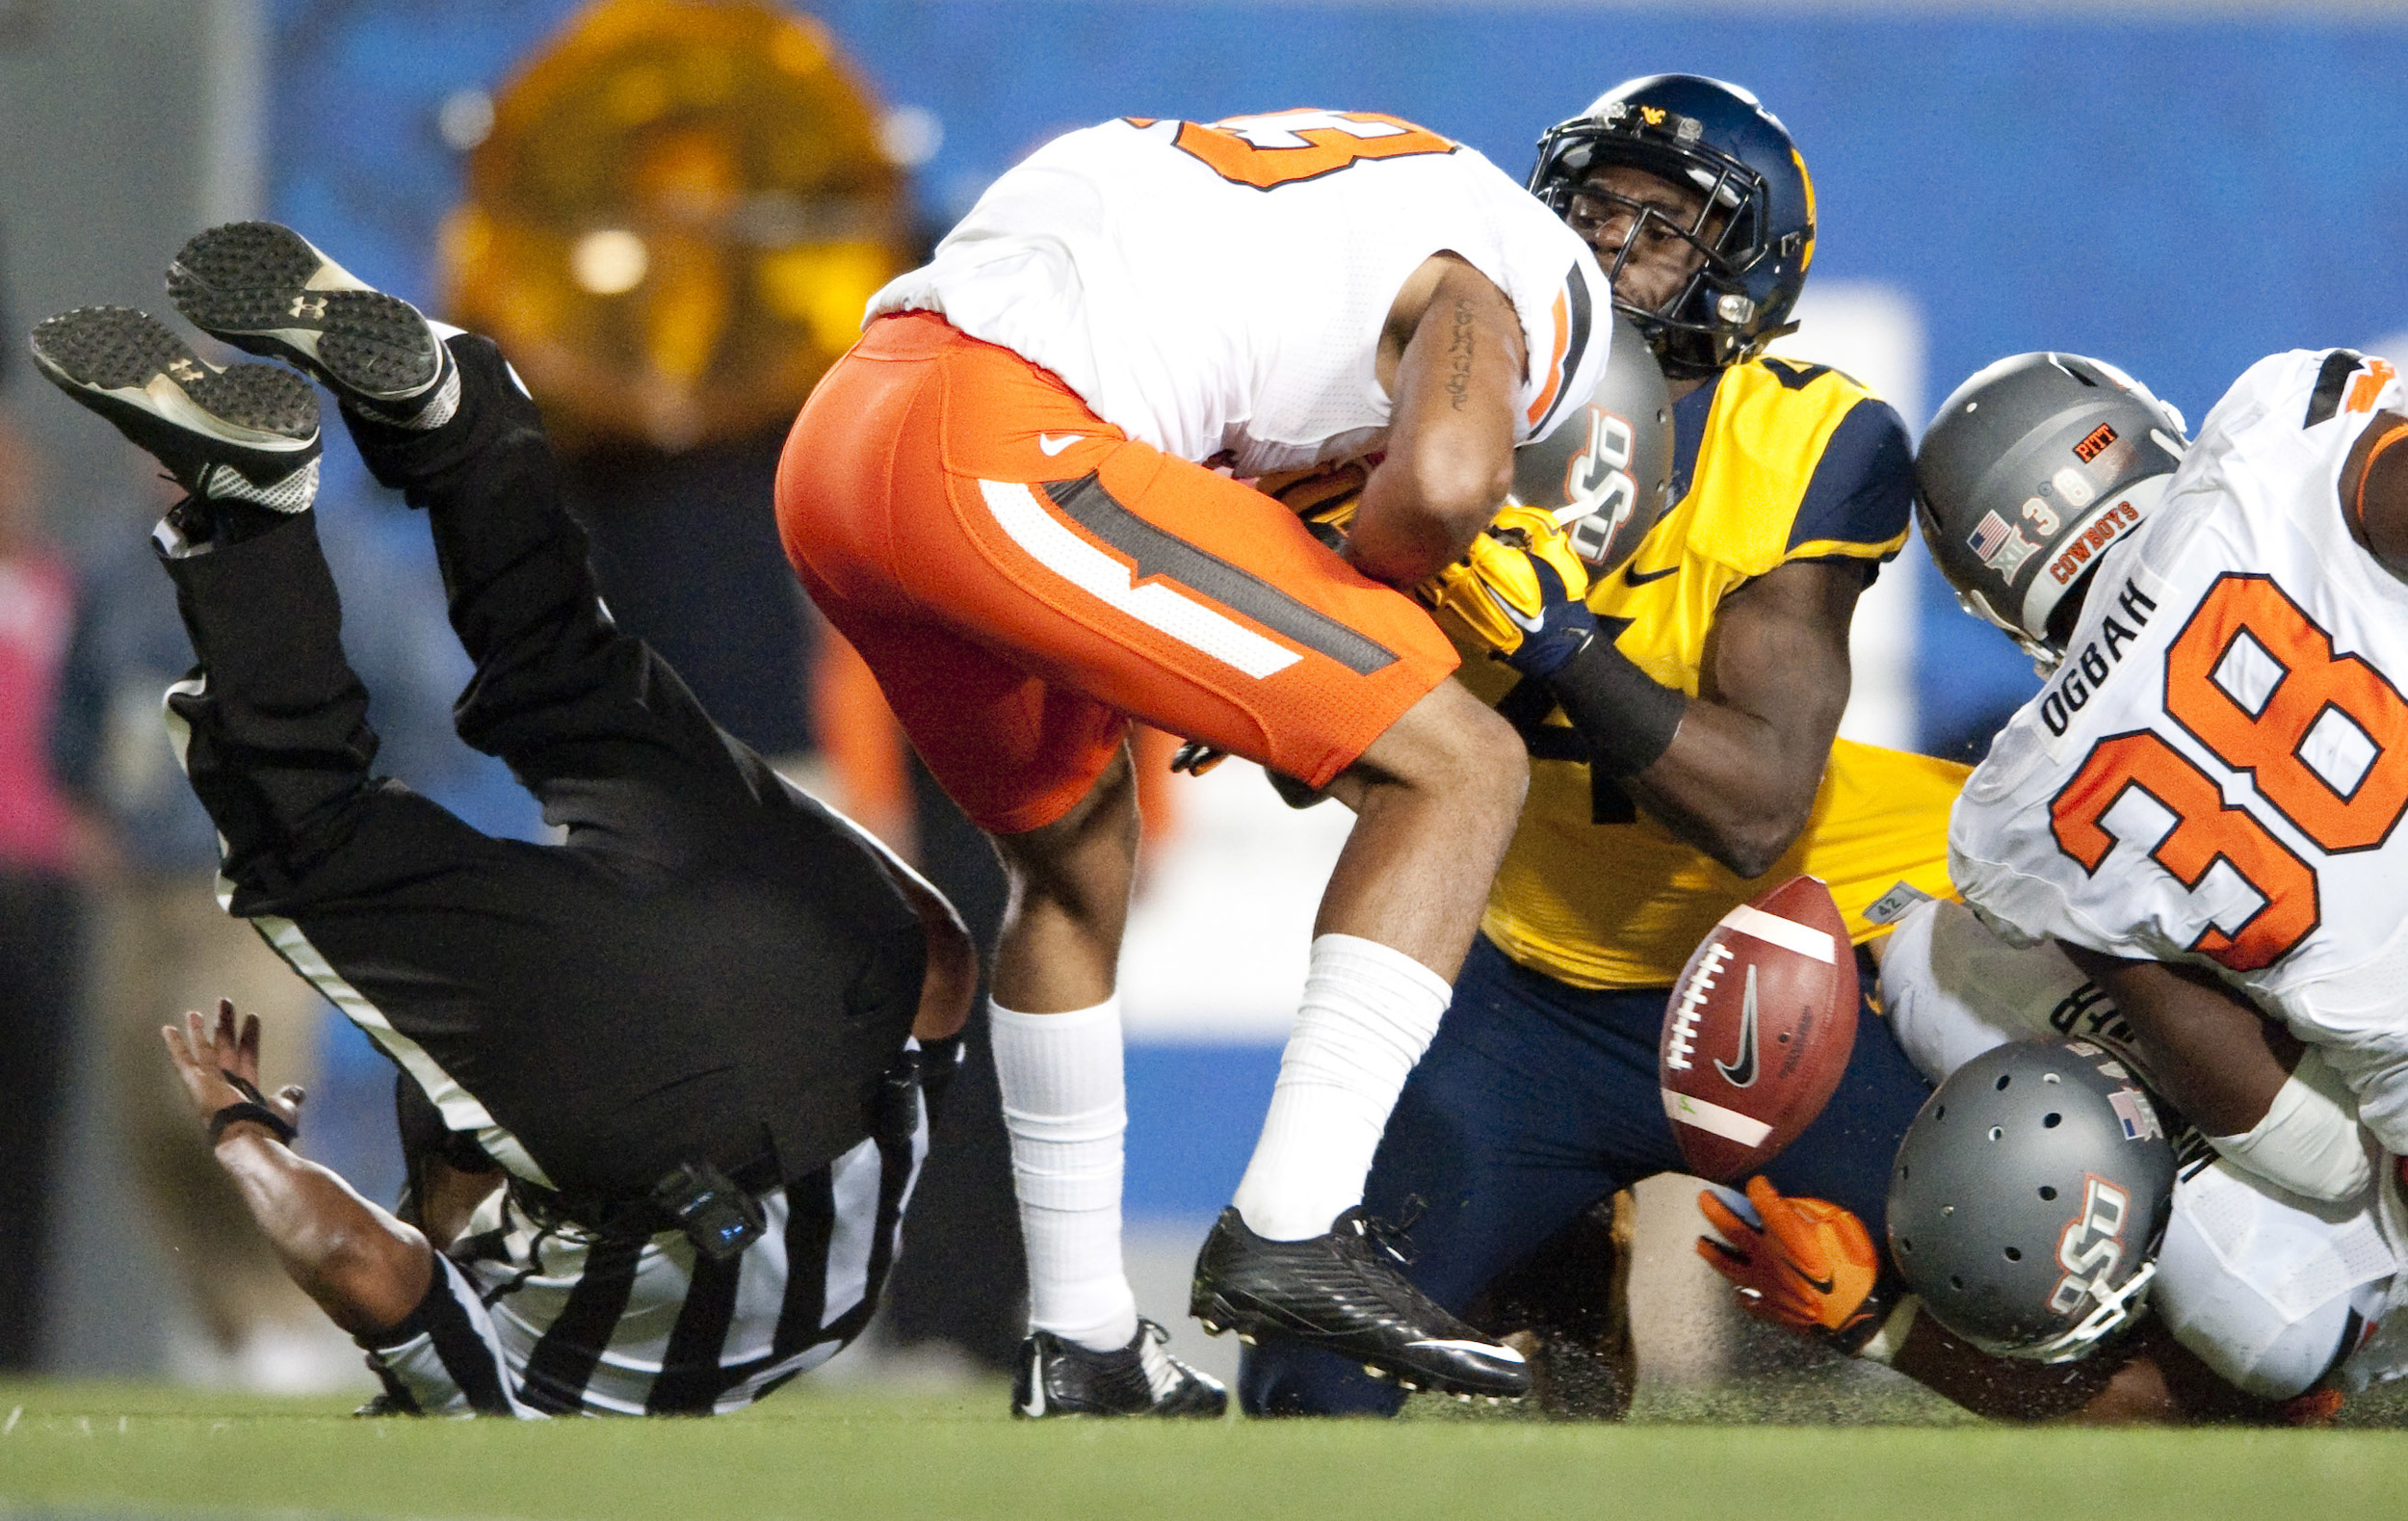 West Virginia running back Wendell Smallwood (4) fumbles the ball near the end zone against Oklahoma State on Saturday, Oct. 10, 2015 at Milan Puskar Stadium in Morgantown, W.Va. Oklahoma State won 33-26 in overtime.